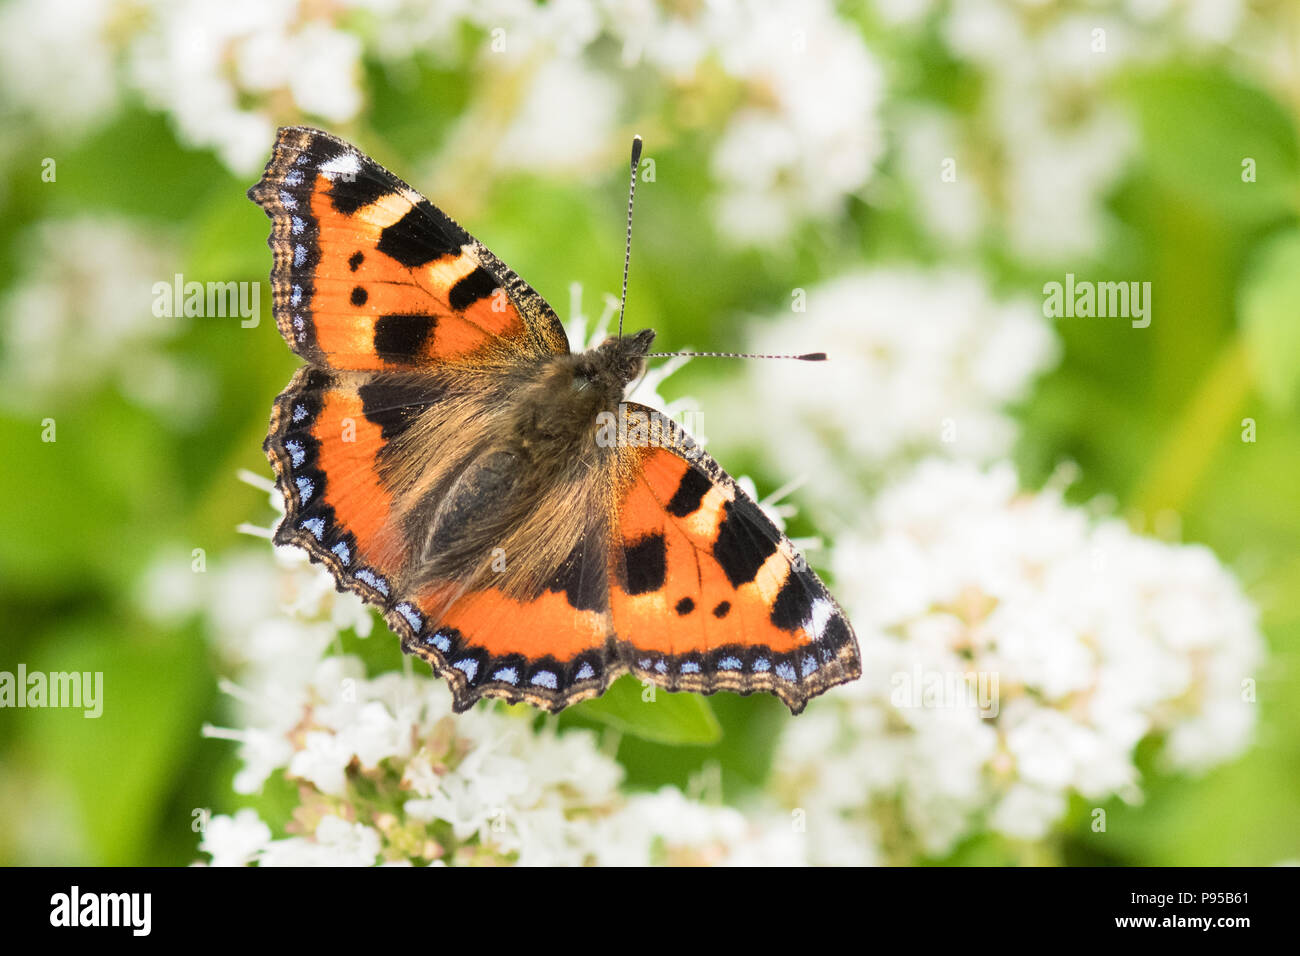 small tortoiseshell butterfly (Aglais urticae) feeding on white marjoram plant flowers in uk garden Stock Photo